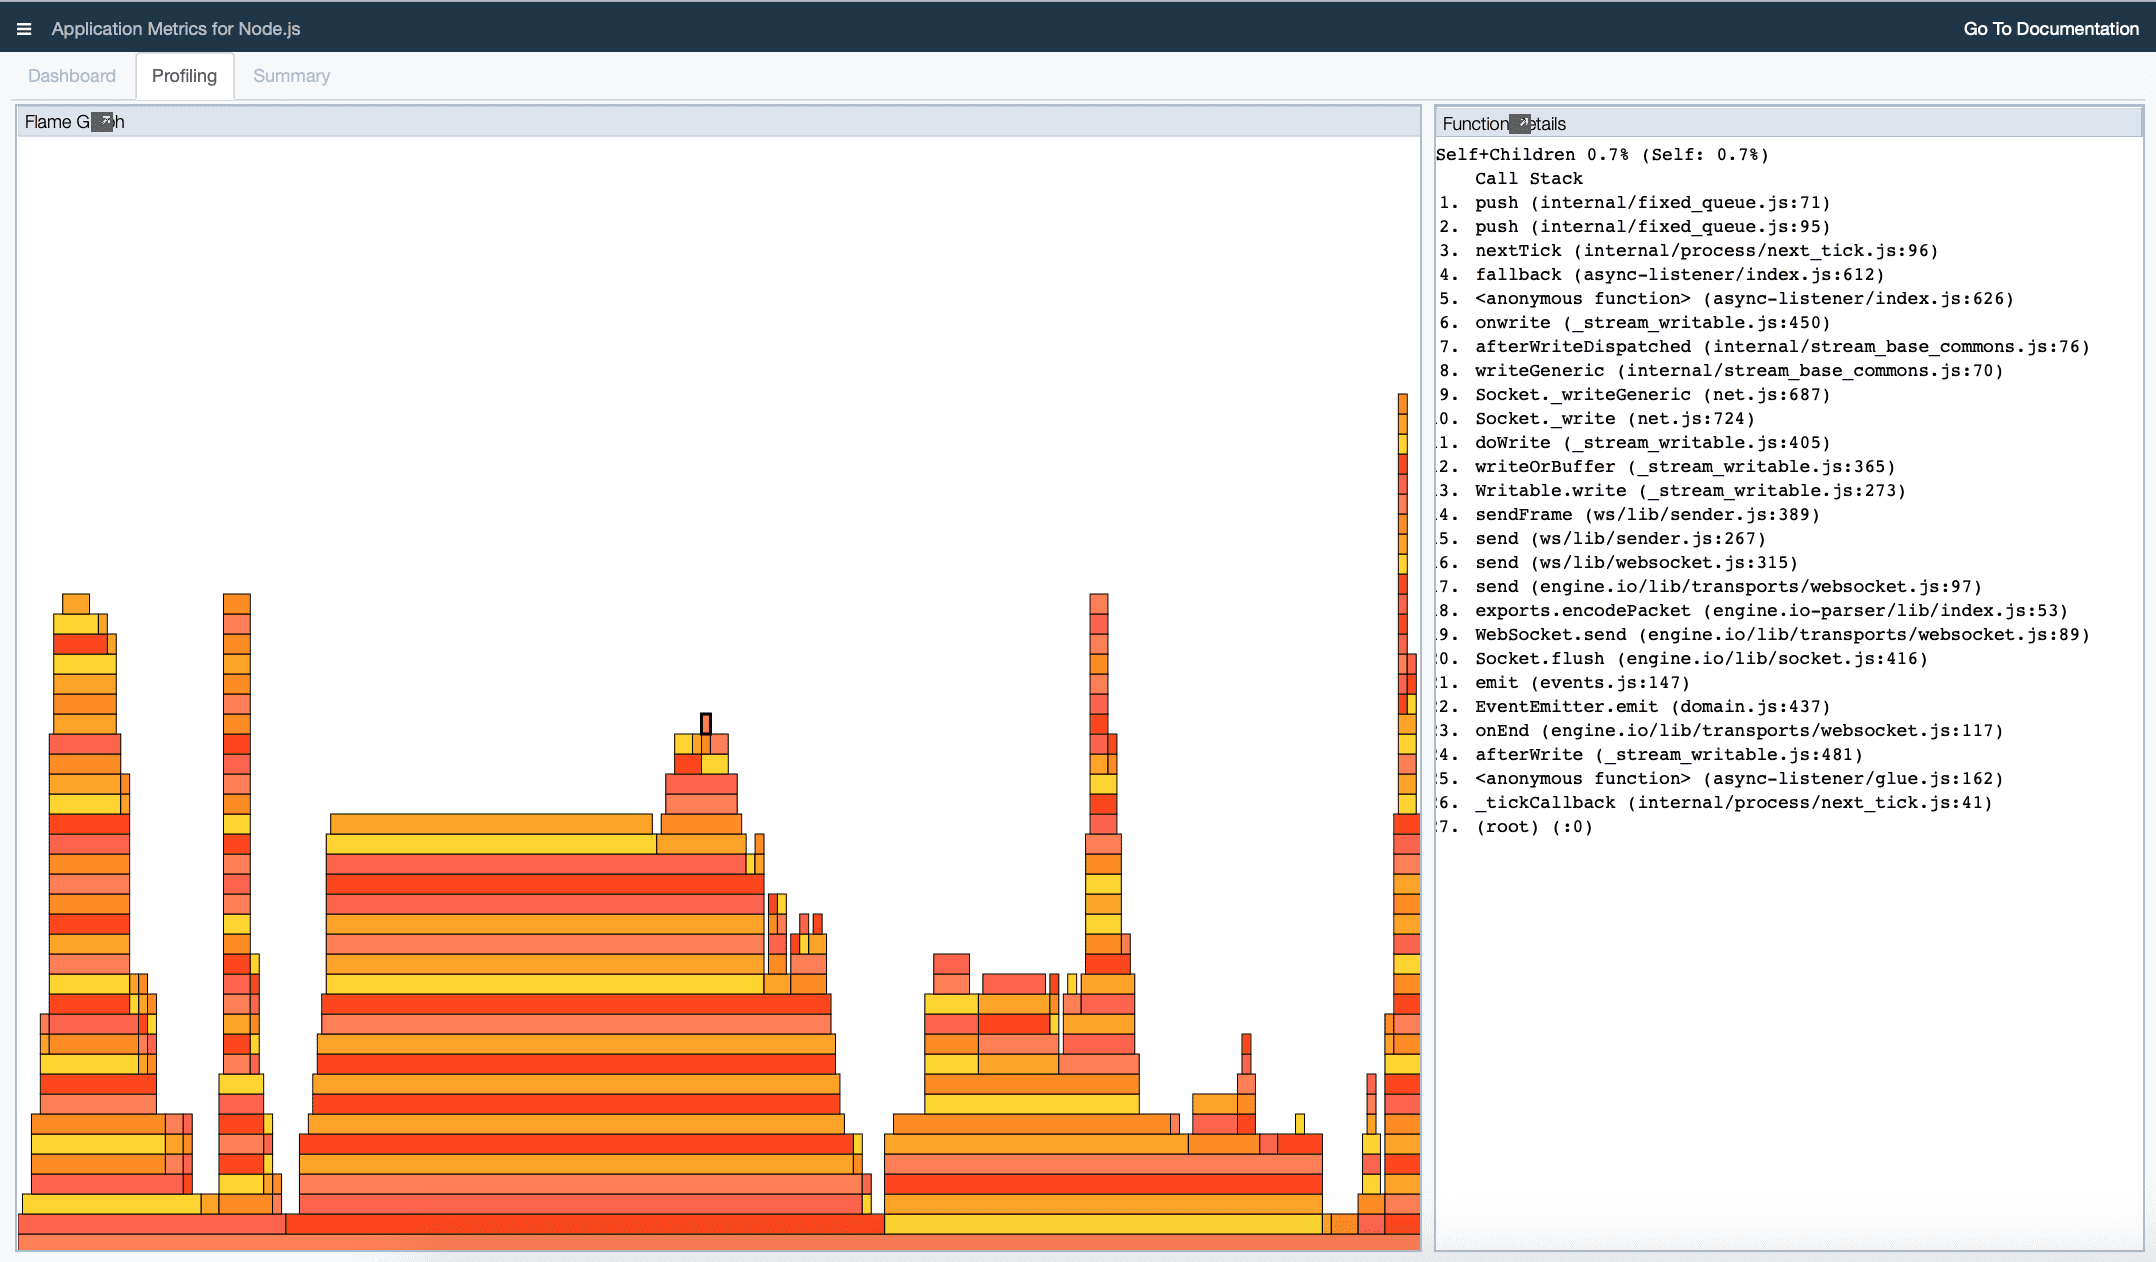 Flame Graph generated from Performance Profiling Data